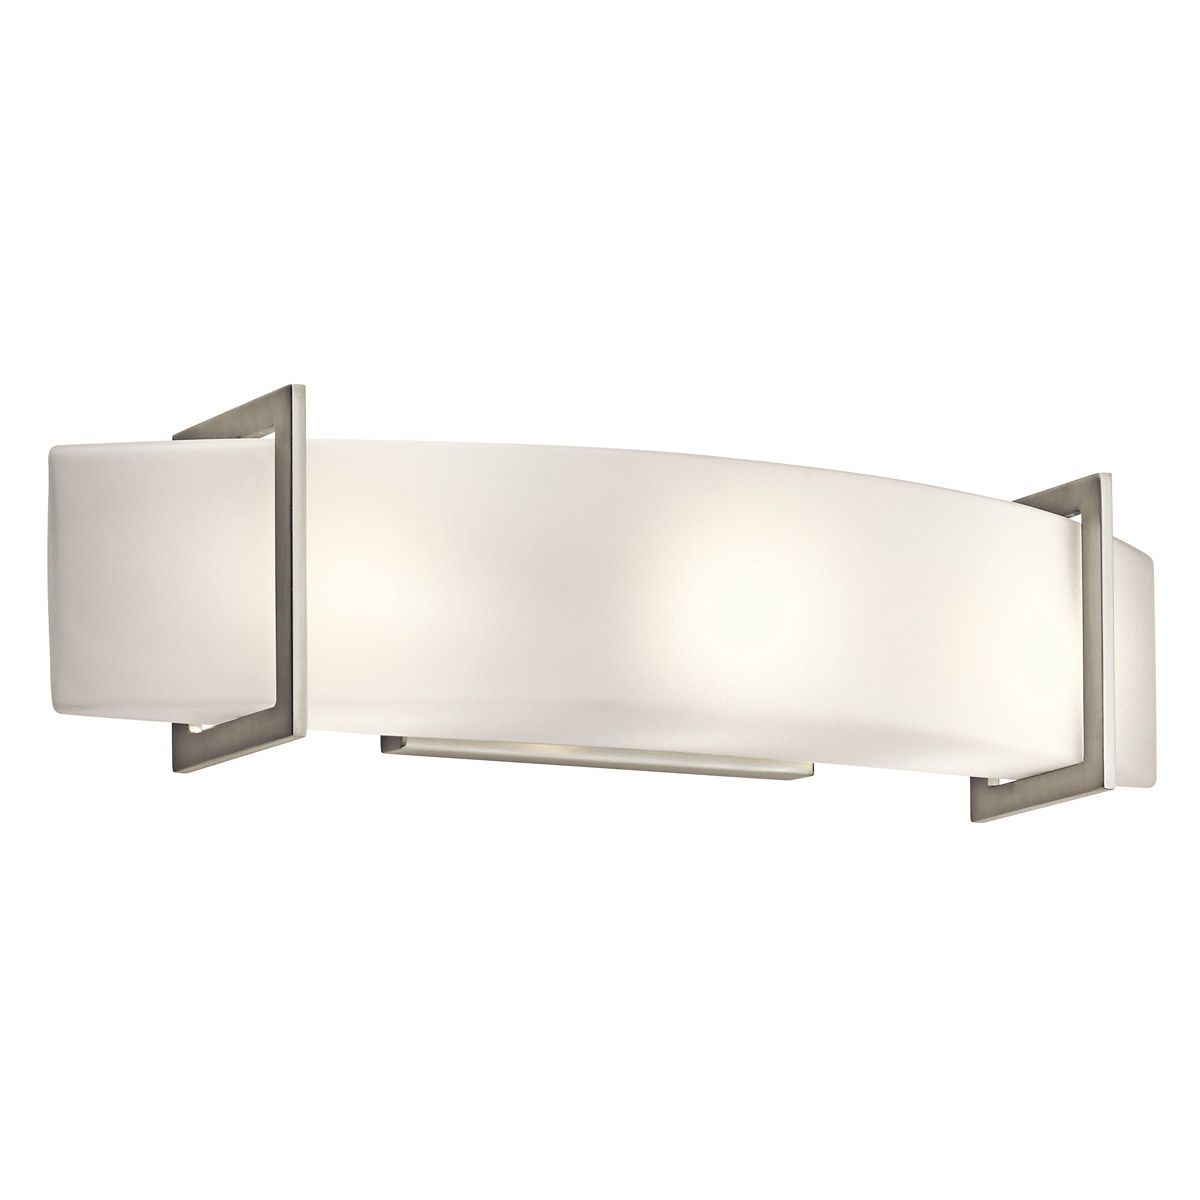 Crescent View Bathroom Vanity Light